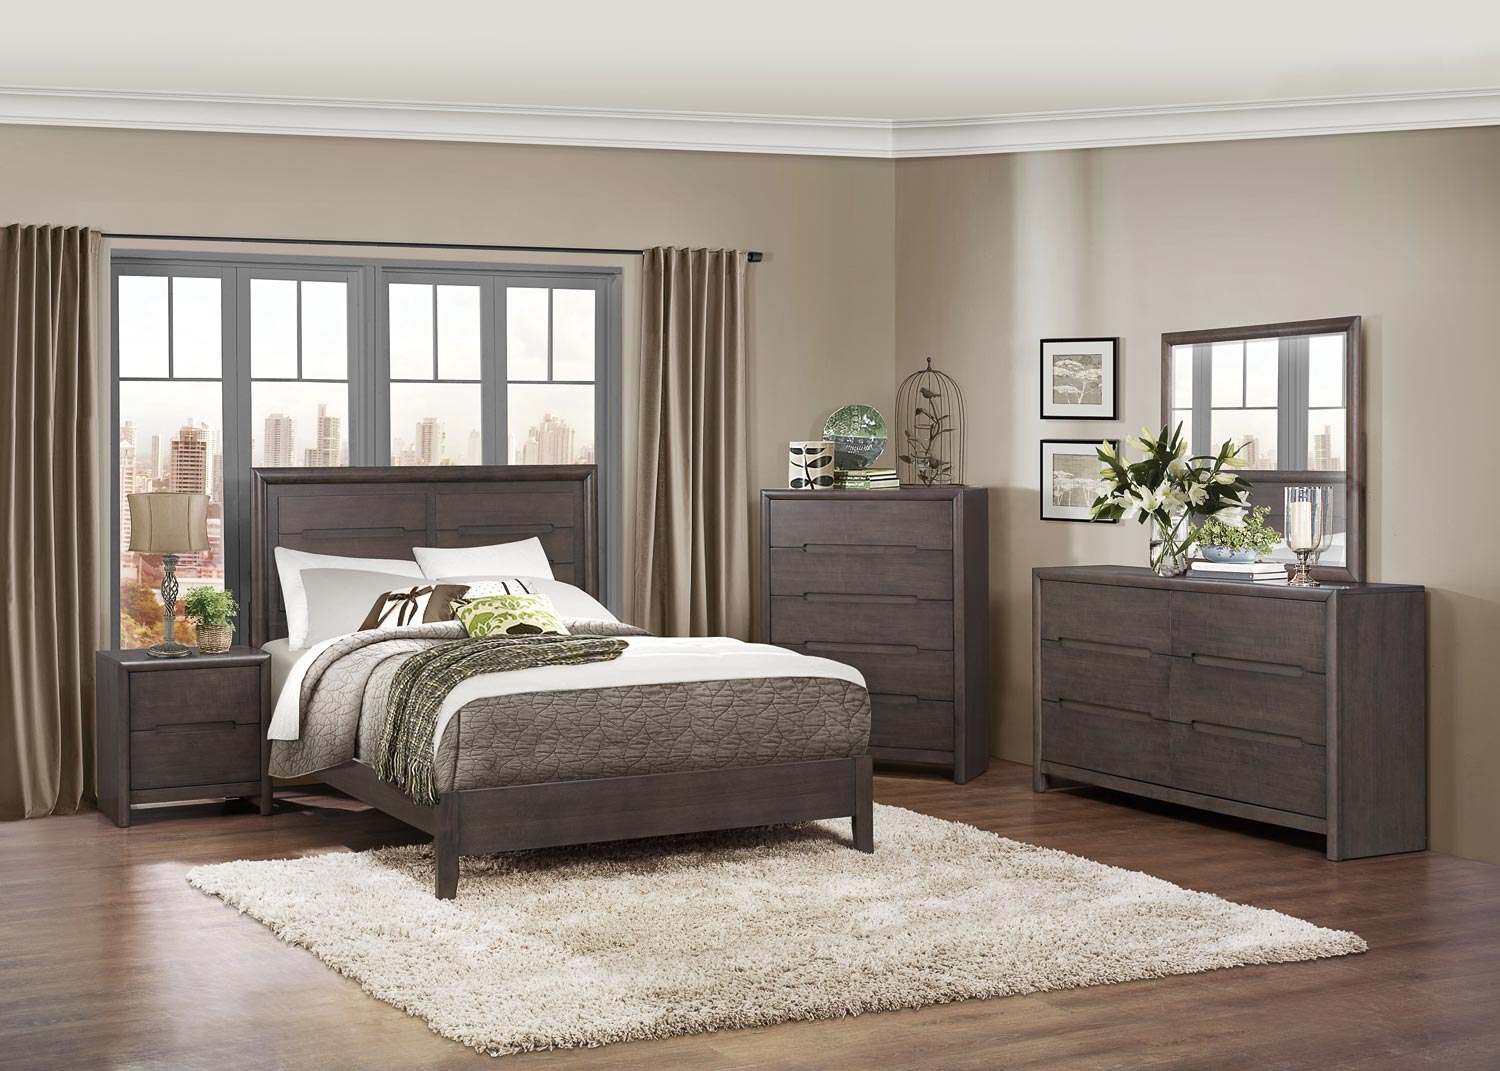 Homelegance Lavinia Bedroom Collection - Weathered Grey